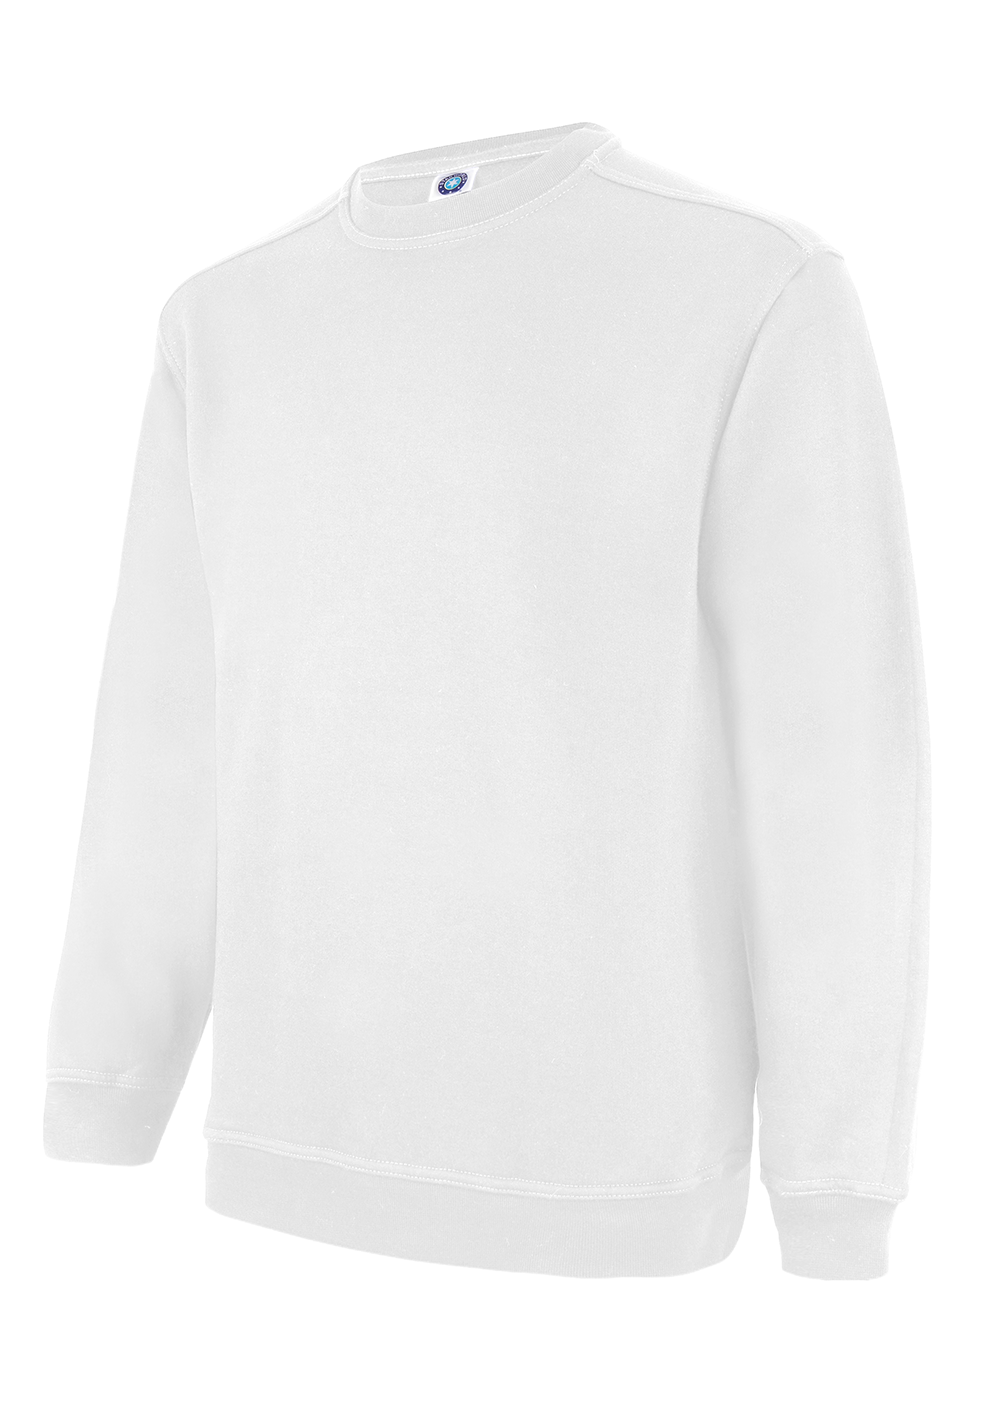 SW299-03-white.png